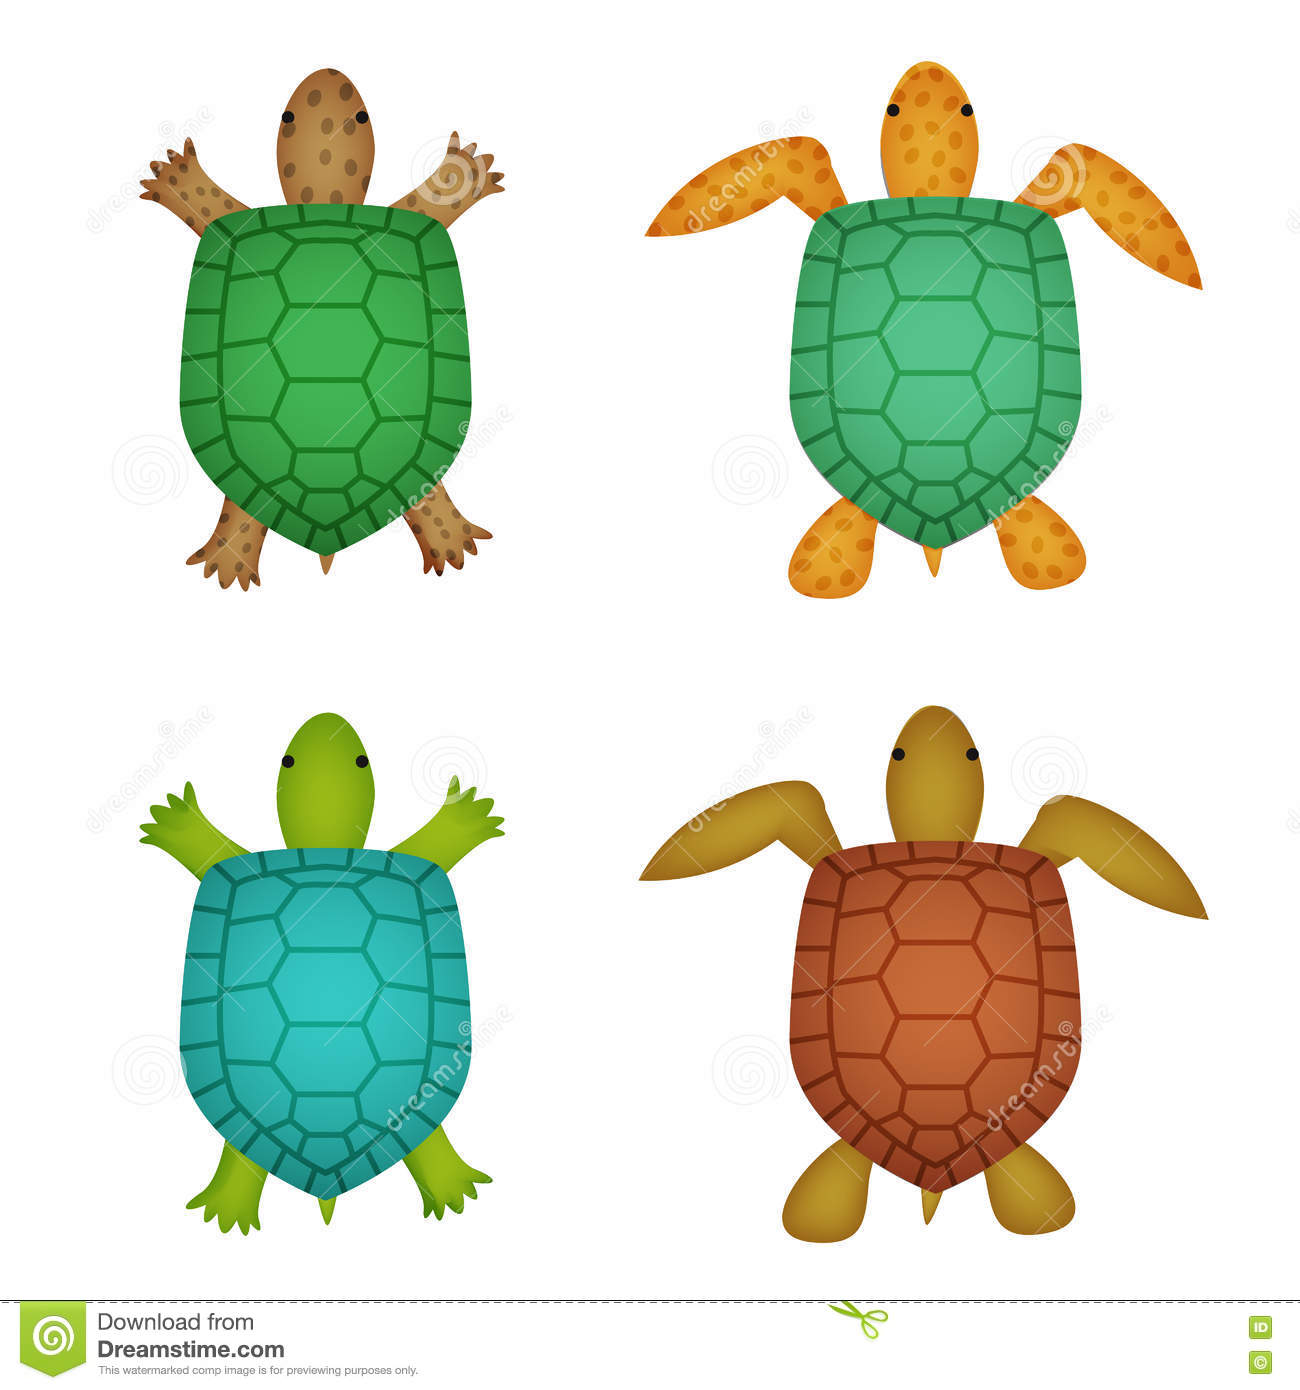 Turtle And Tortoise In Realistic Style, Top View Stock Vector.